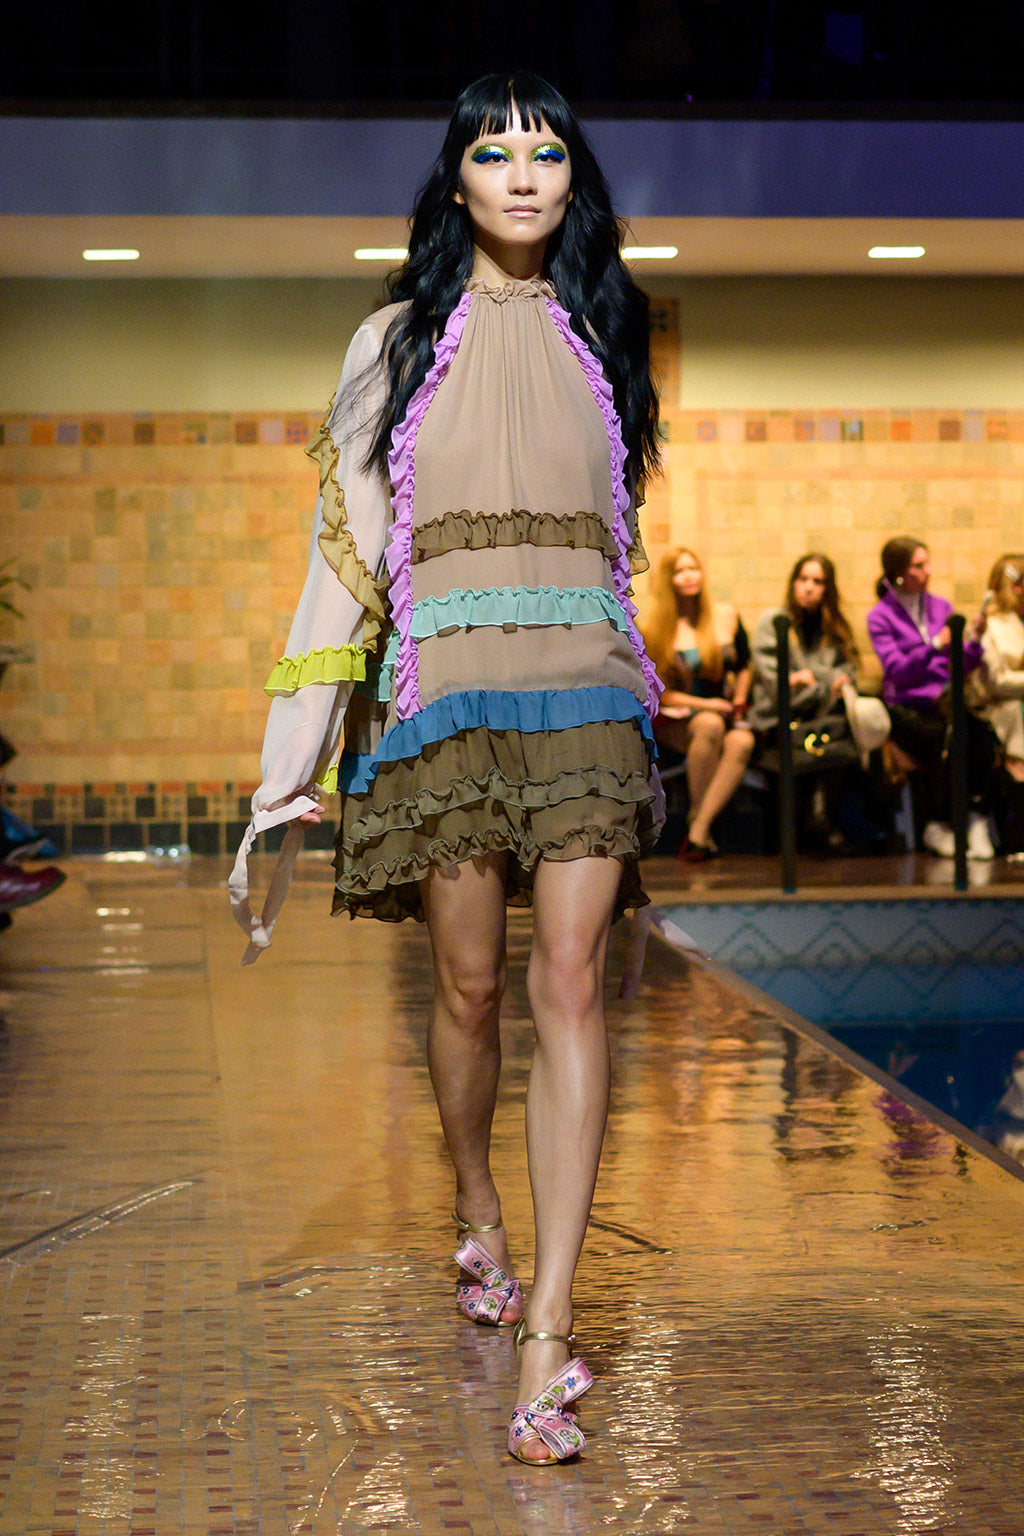 Cynthia Rowley Fall 2019 look 33 featuring a mini multicolored ruffle dress with greens, blues, and purples